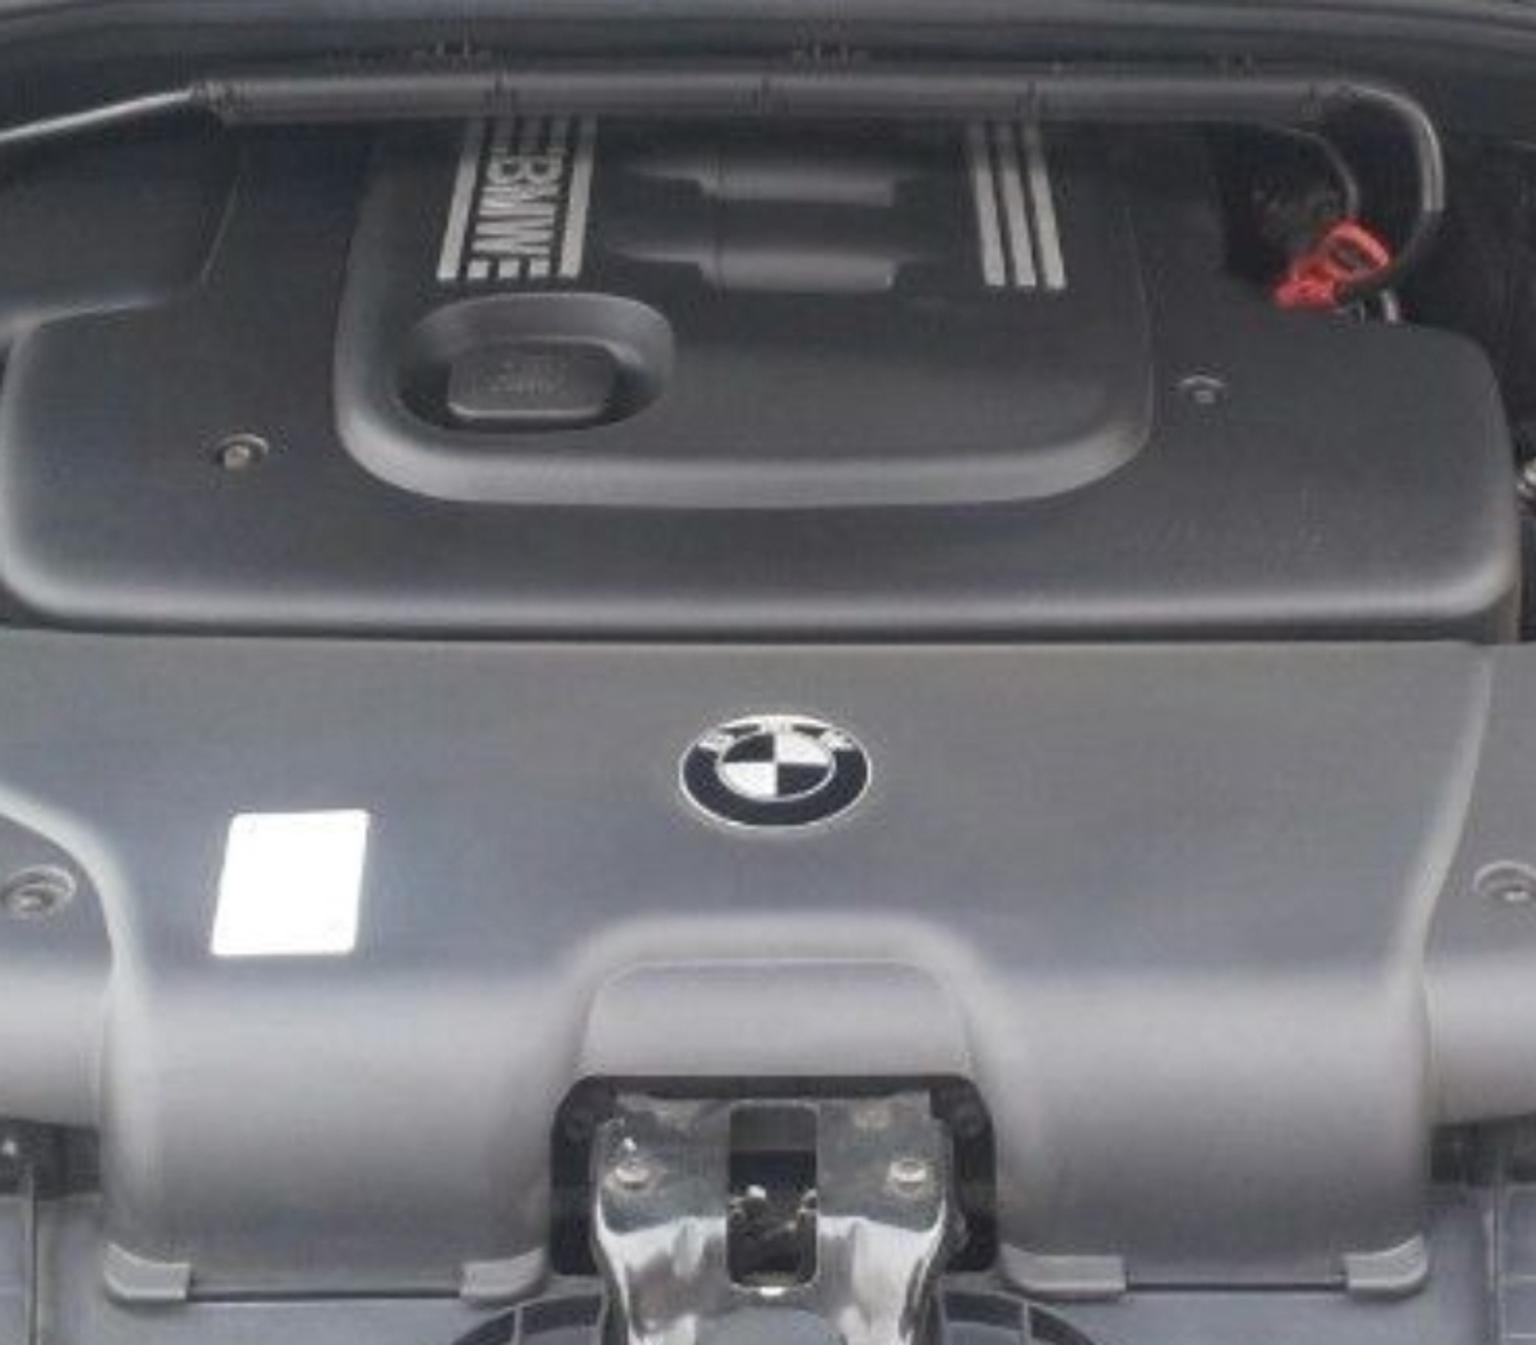 BMW 2 0 DIESEL M47 ENGINE BREAKING in IG1 Redbridge for free